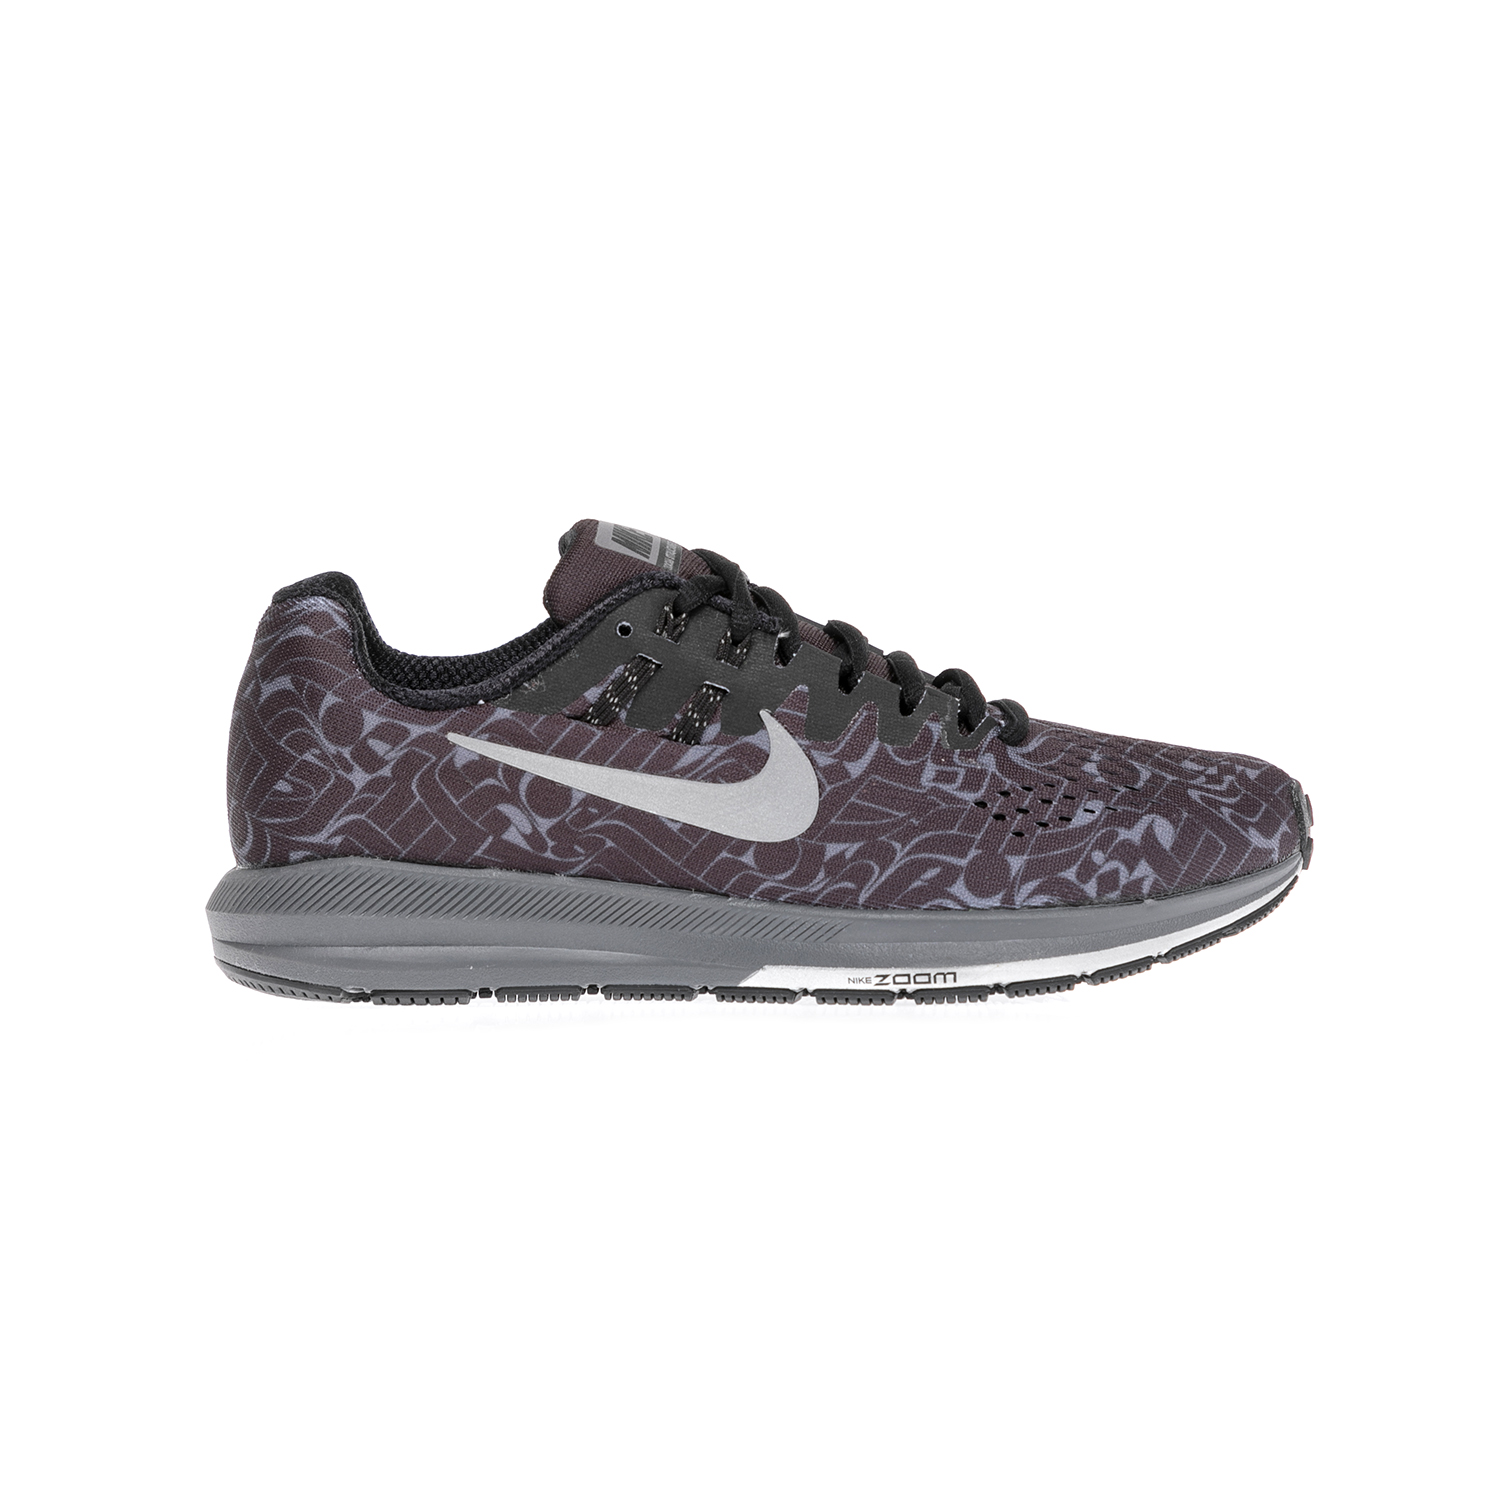 NIKE – Γυναικεία παπούτσια NIKE AIR ZOOM STRUCTURE 20 ROSTARR γκρι